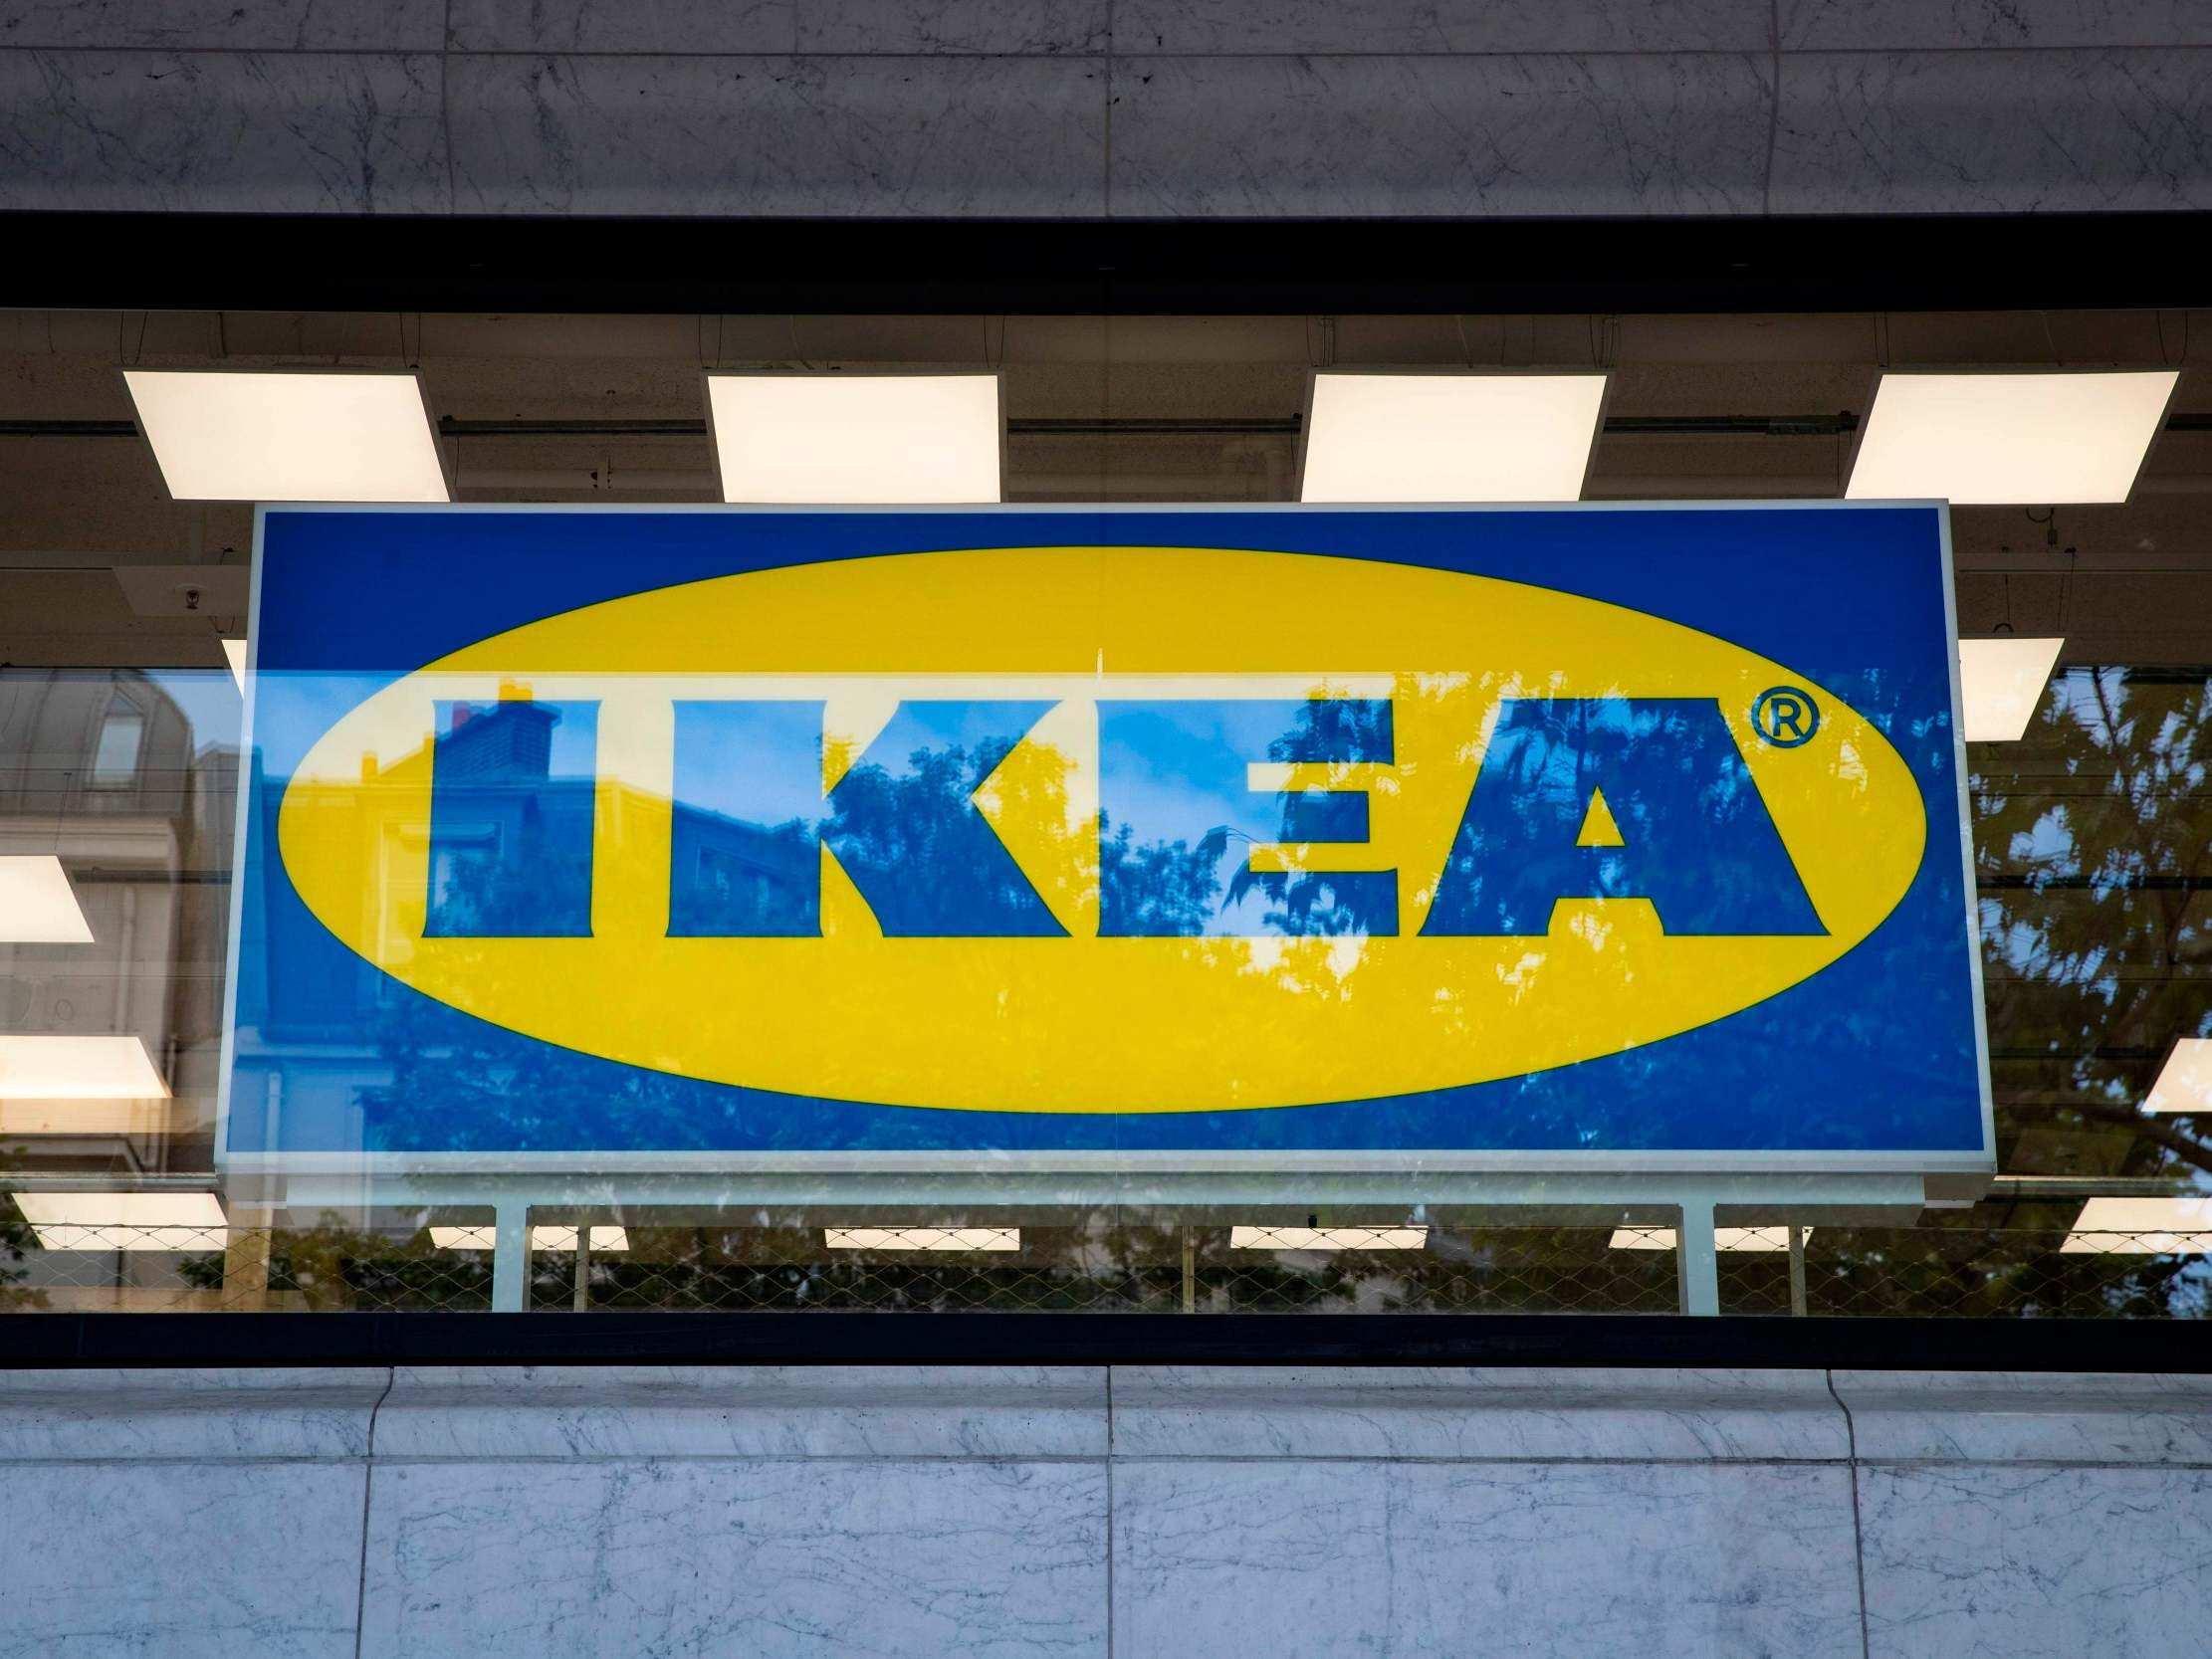 Coronavirus: Ikea to reopen 19 stores in UK from 1 June with new social distancing measures